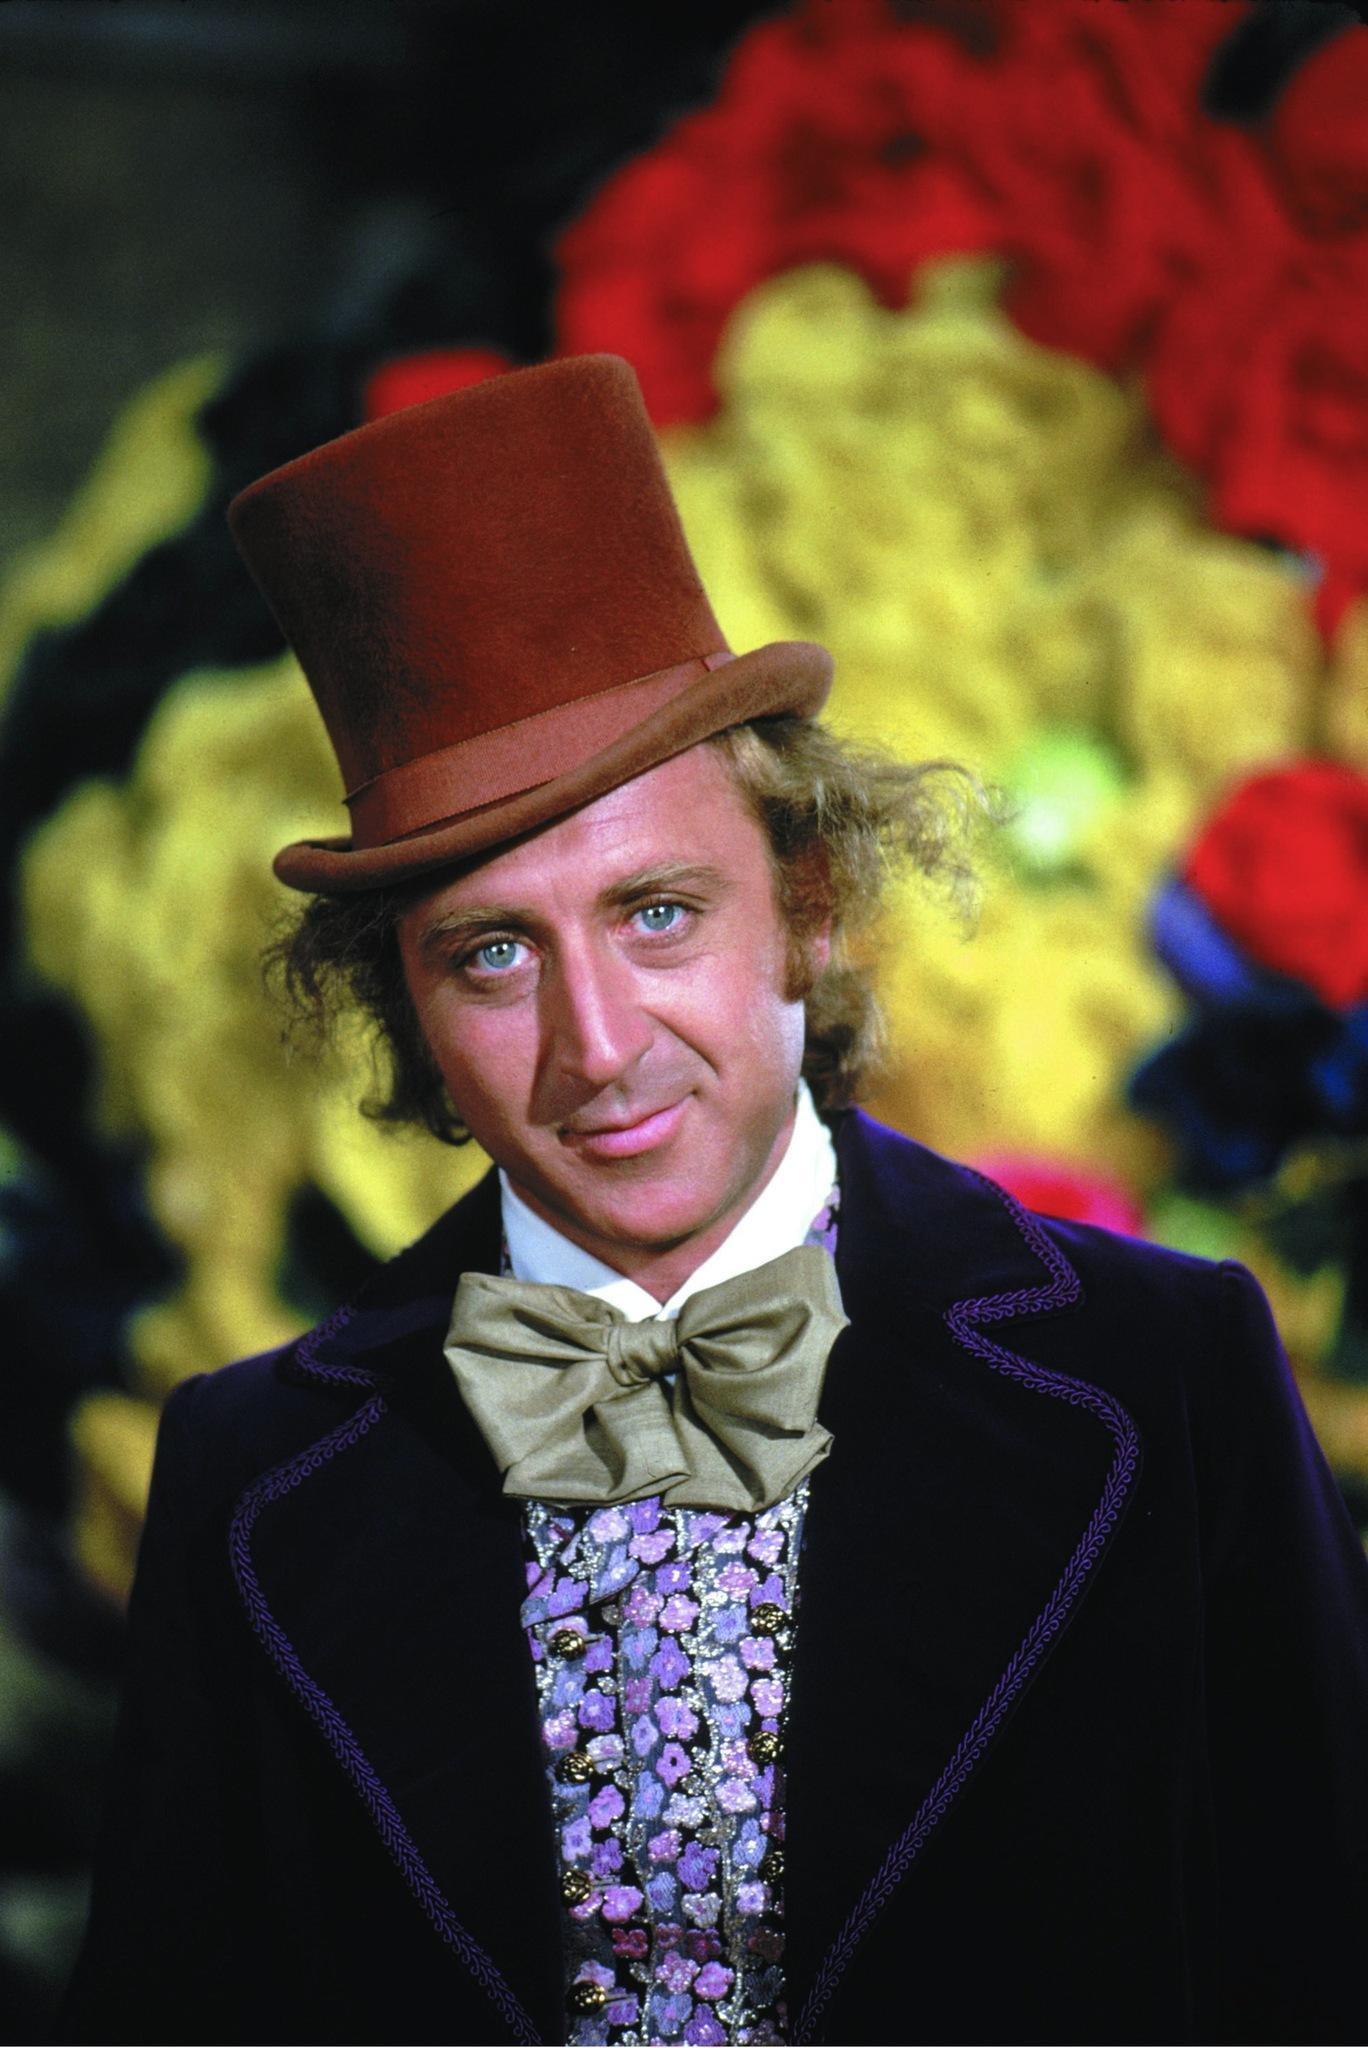 Gene Wilder in Willy Wonka character.